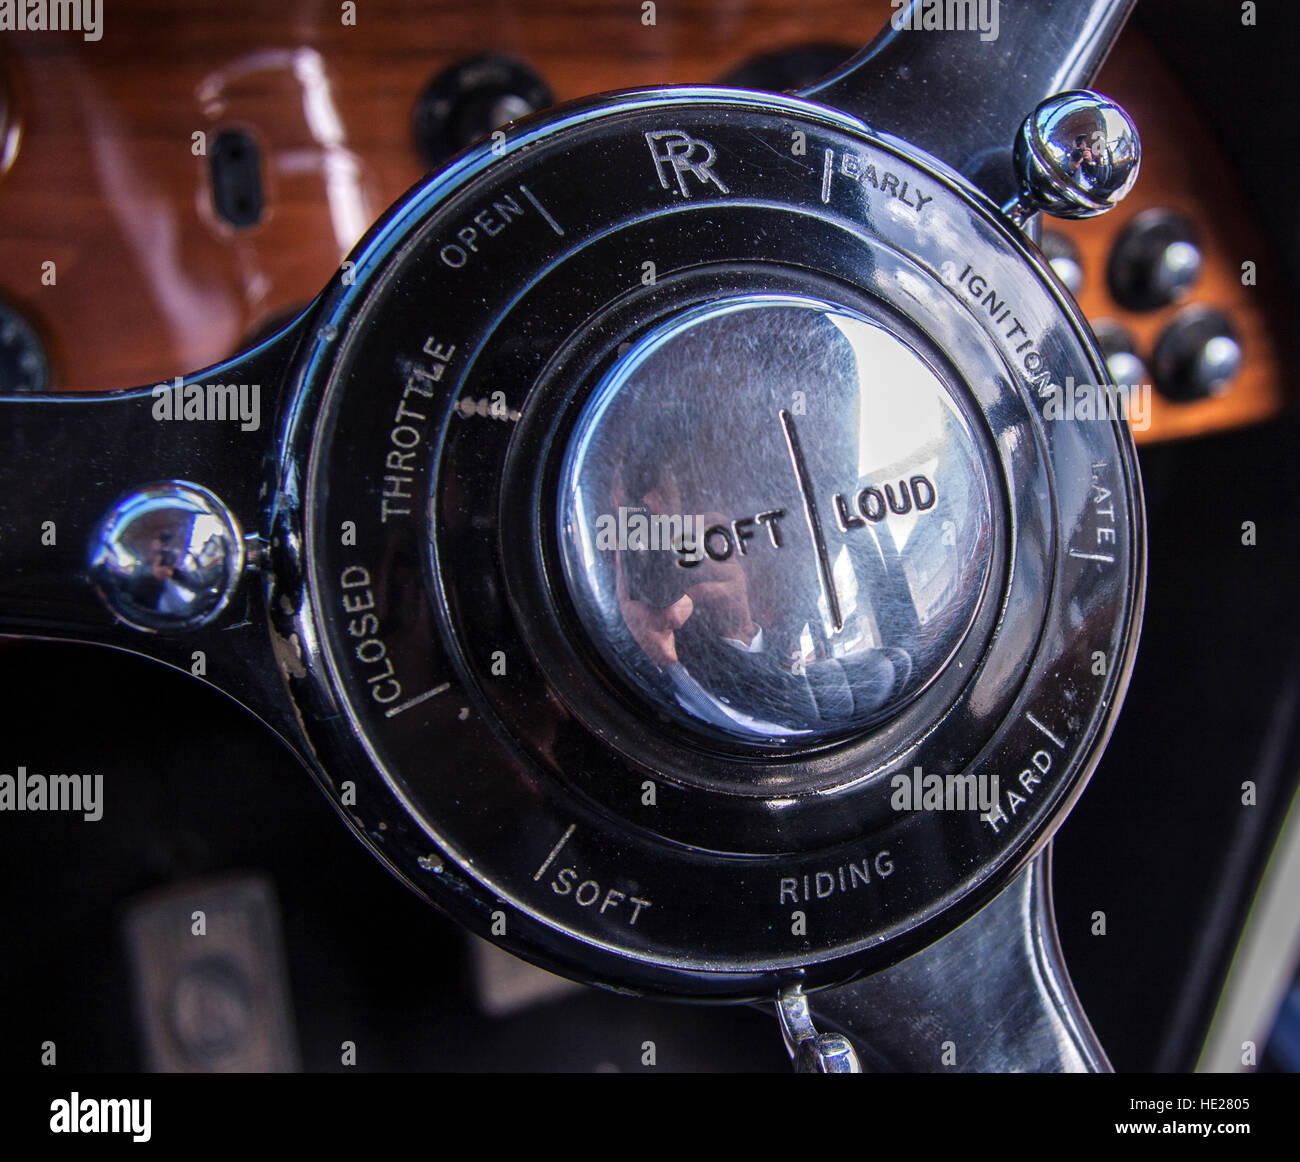 Steering wheel hub of a Rolls Royce Phantom III, controls for horn soft/loud, ride firmness, and ignition advance - Stock Image